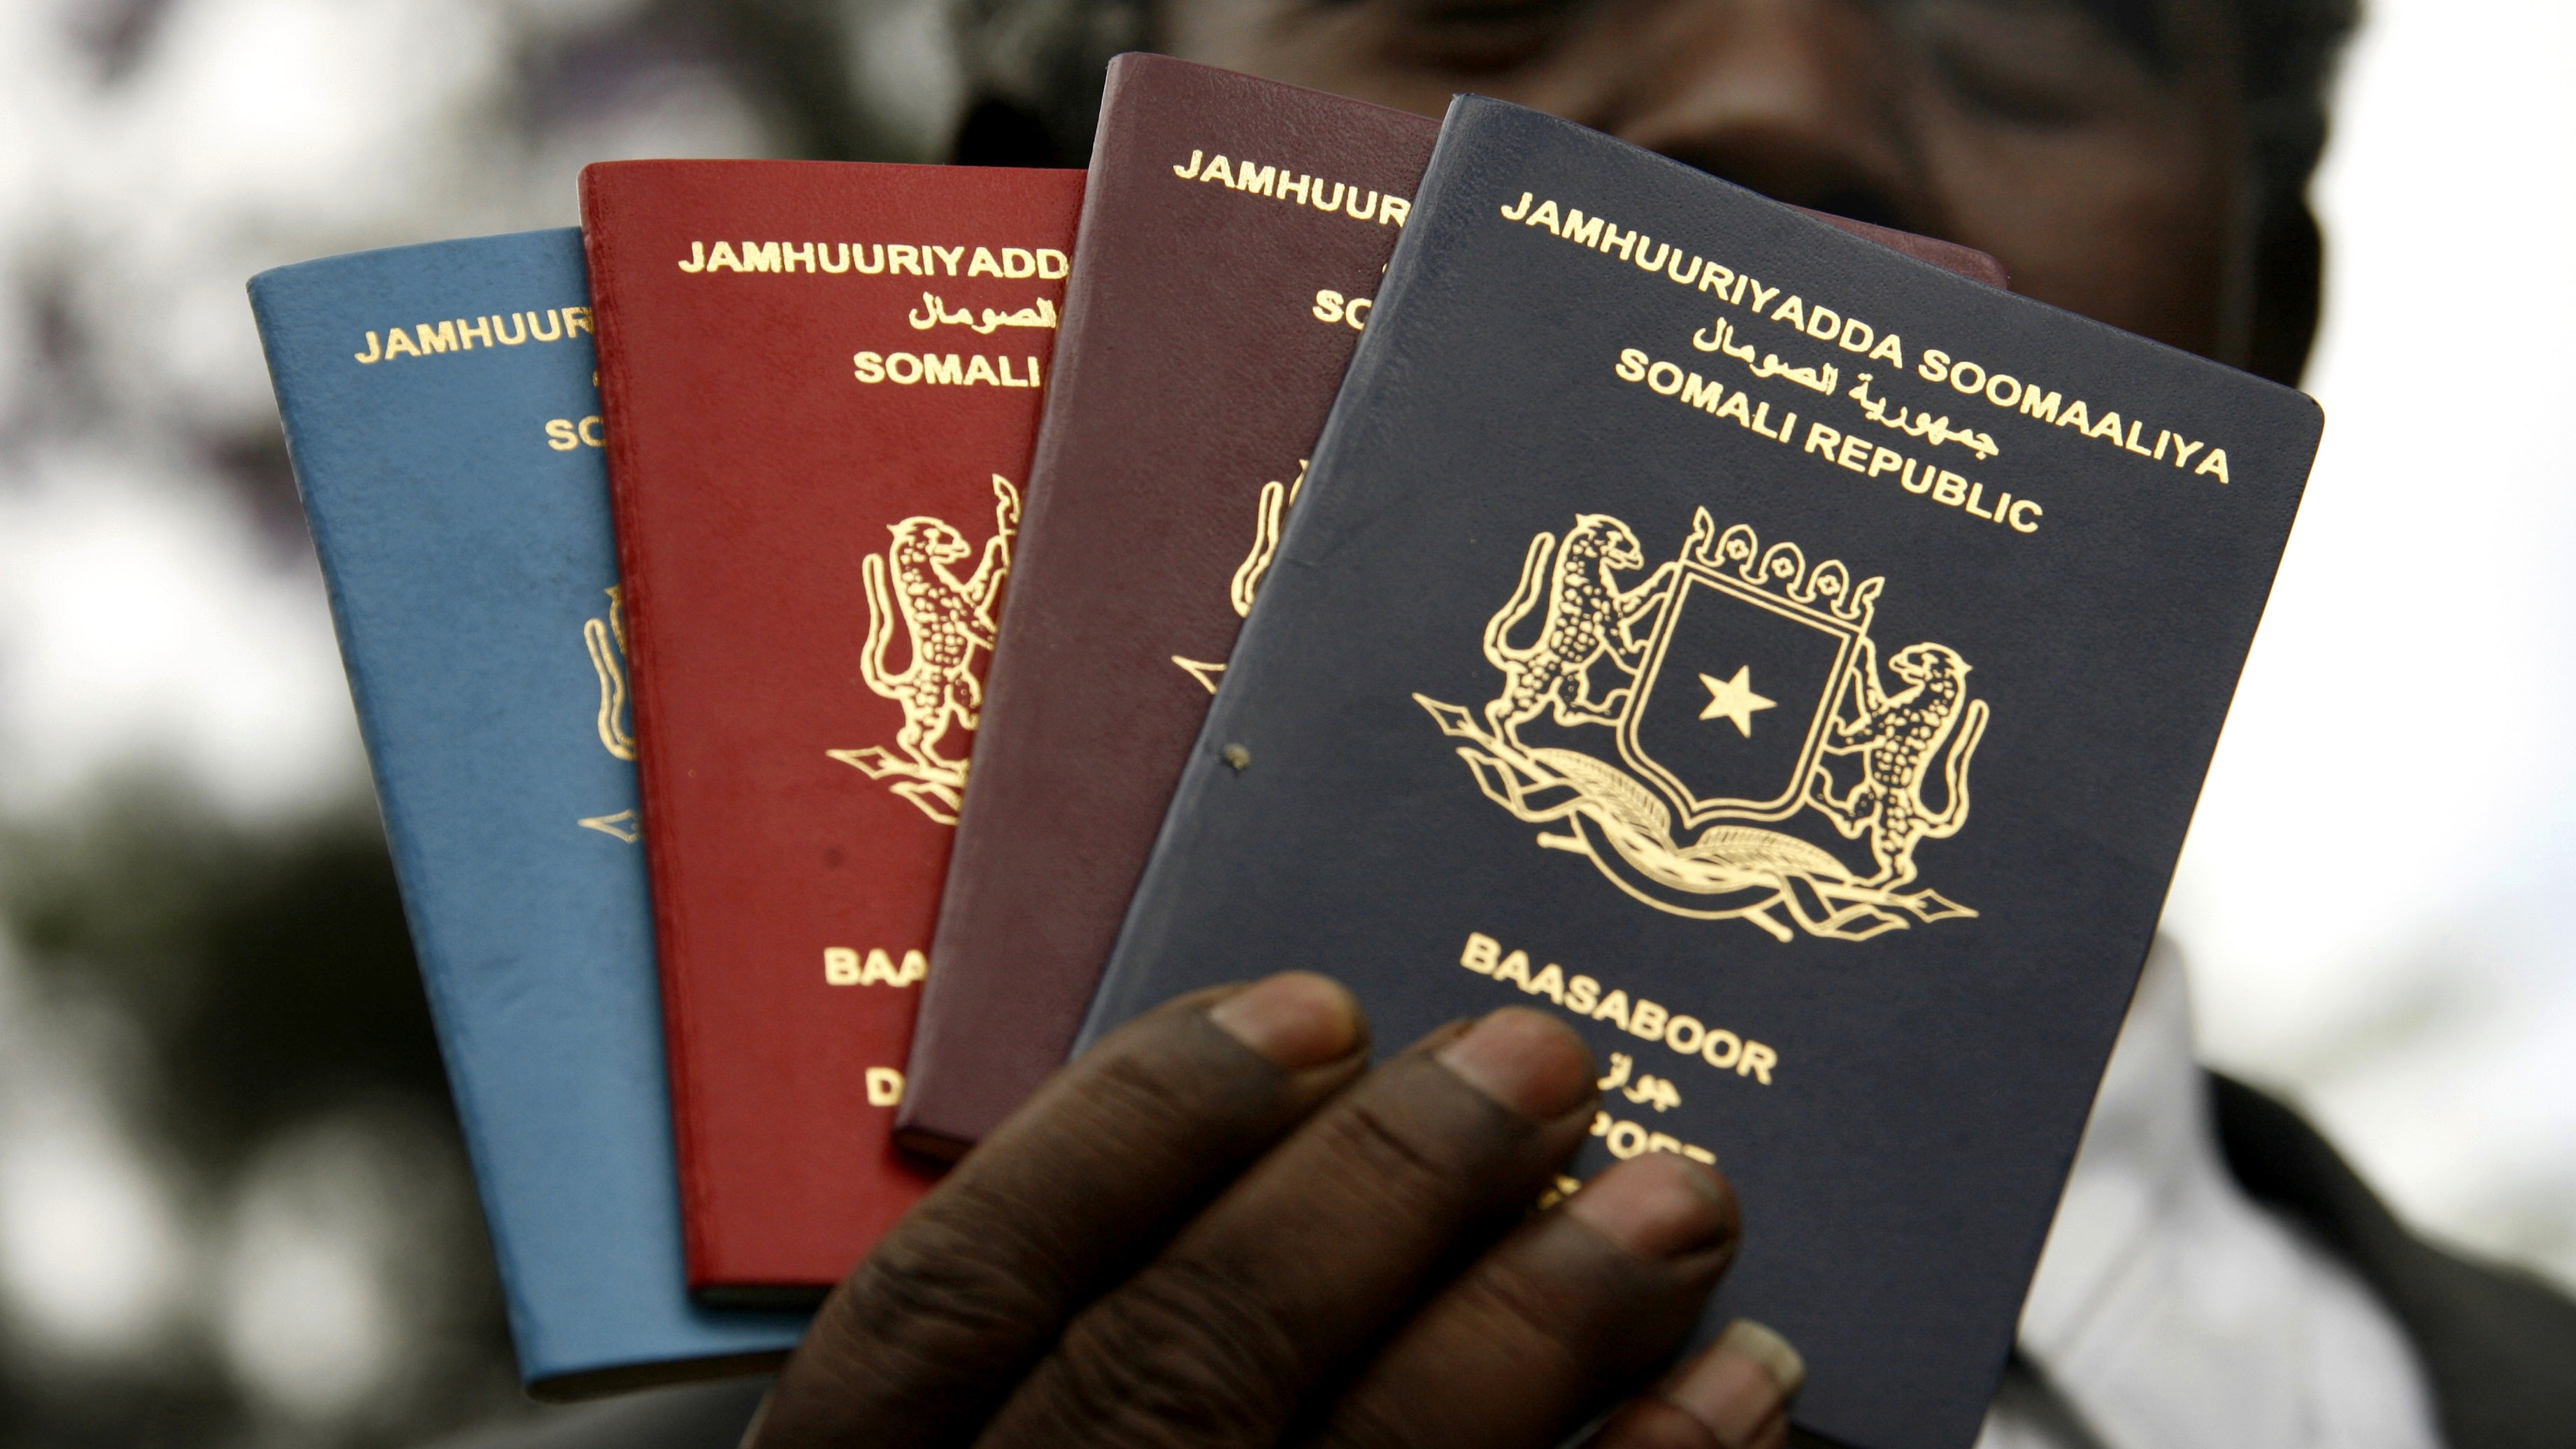 Africa's most powerful passports: Seychelles strengthens while Somalia struggles